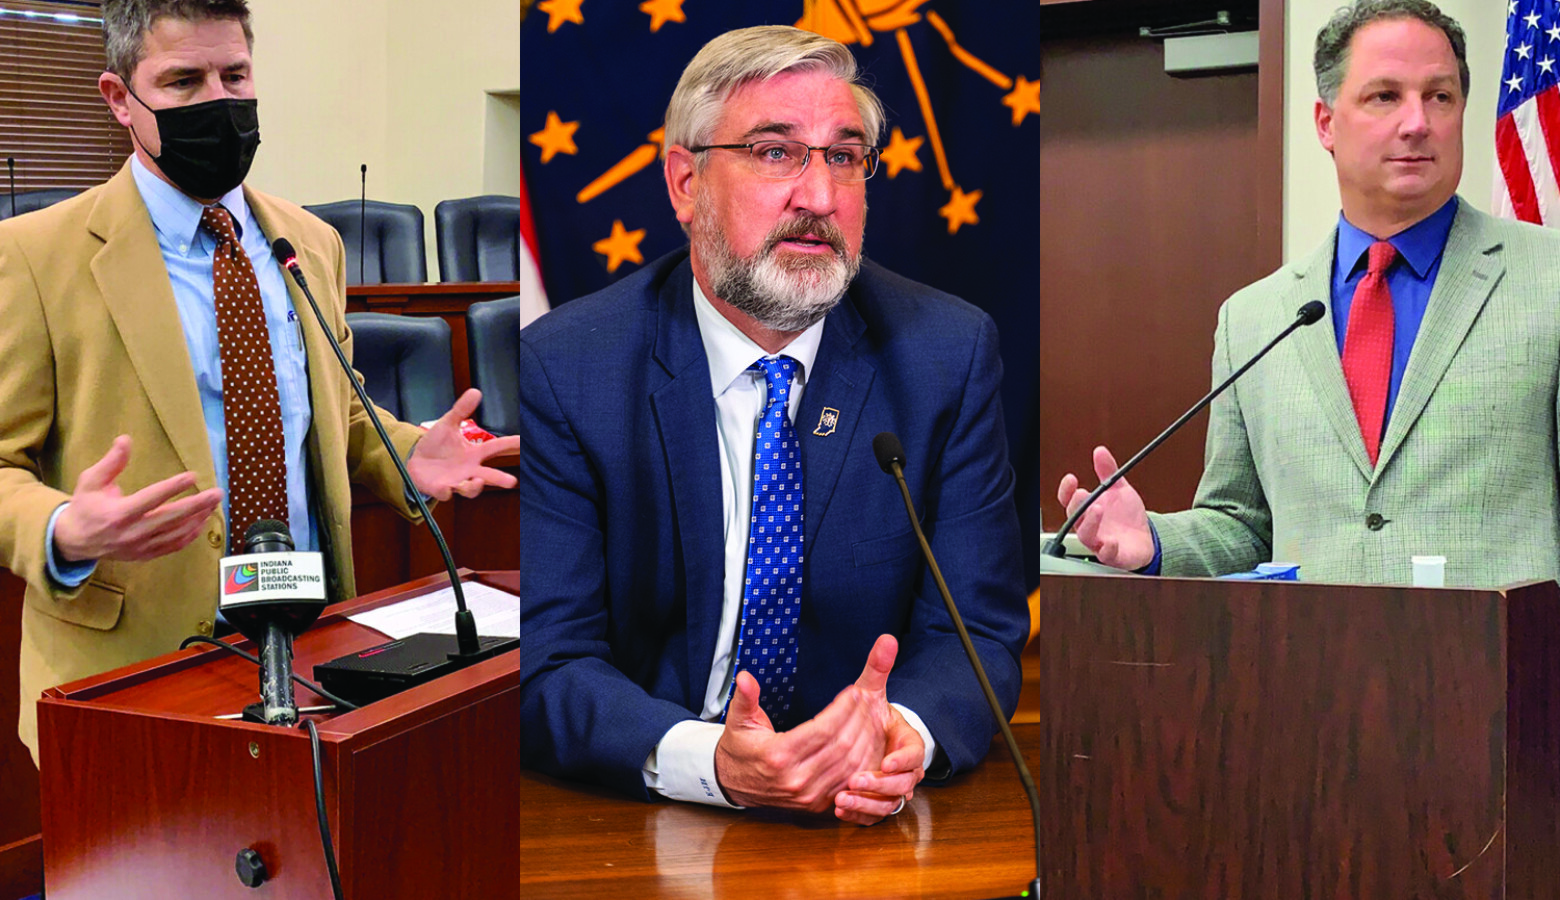 Gov. Eric Holcomb, center, sued the Indiana General Assembly, led by Senate President Pro Tem Rodric Bray (R-Martinsville), left and House Speaker Todd Huston (R-Fishers), right, over an emergency powers law. (Brandon Smith/IPB News and courtesy of the go